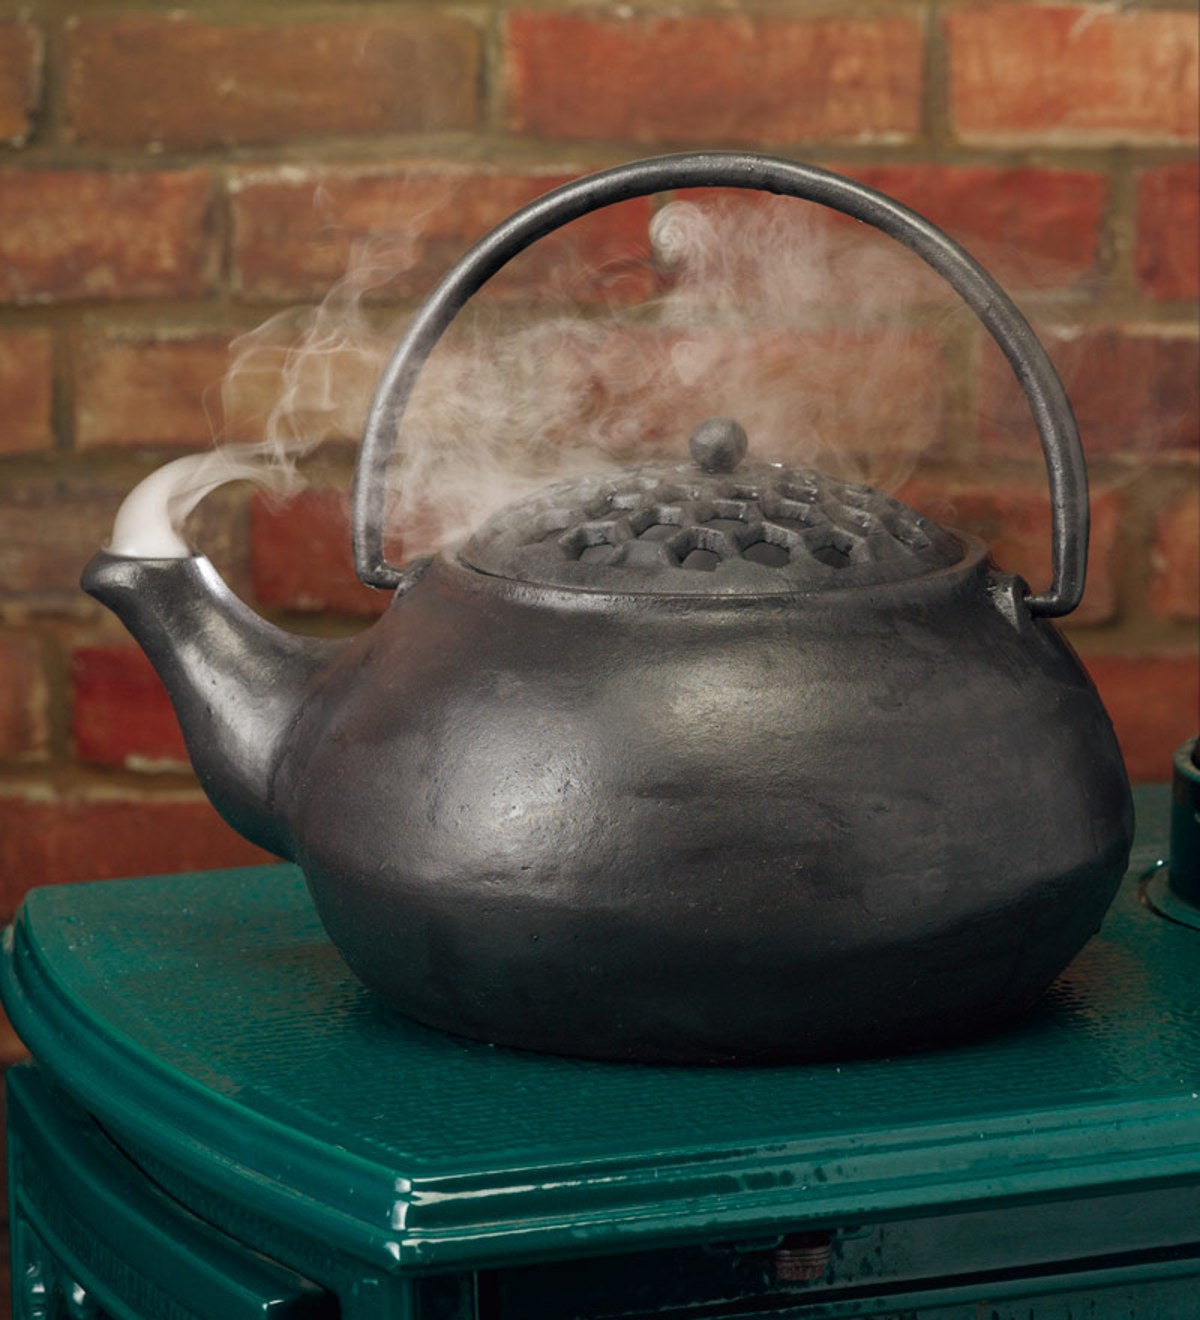 3 QT. Cast Iron Steamer Kettle - Black